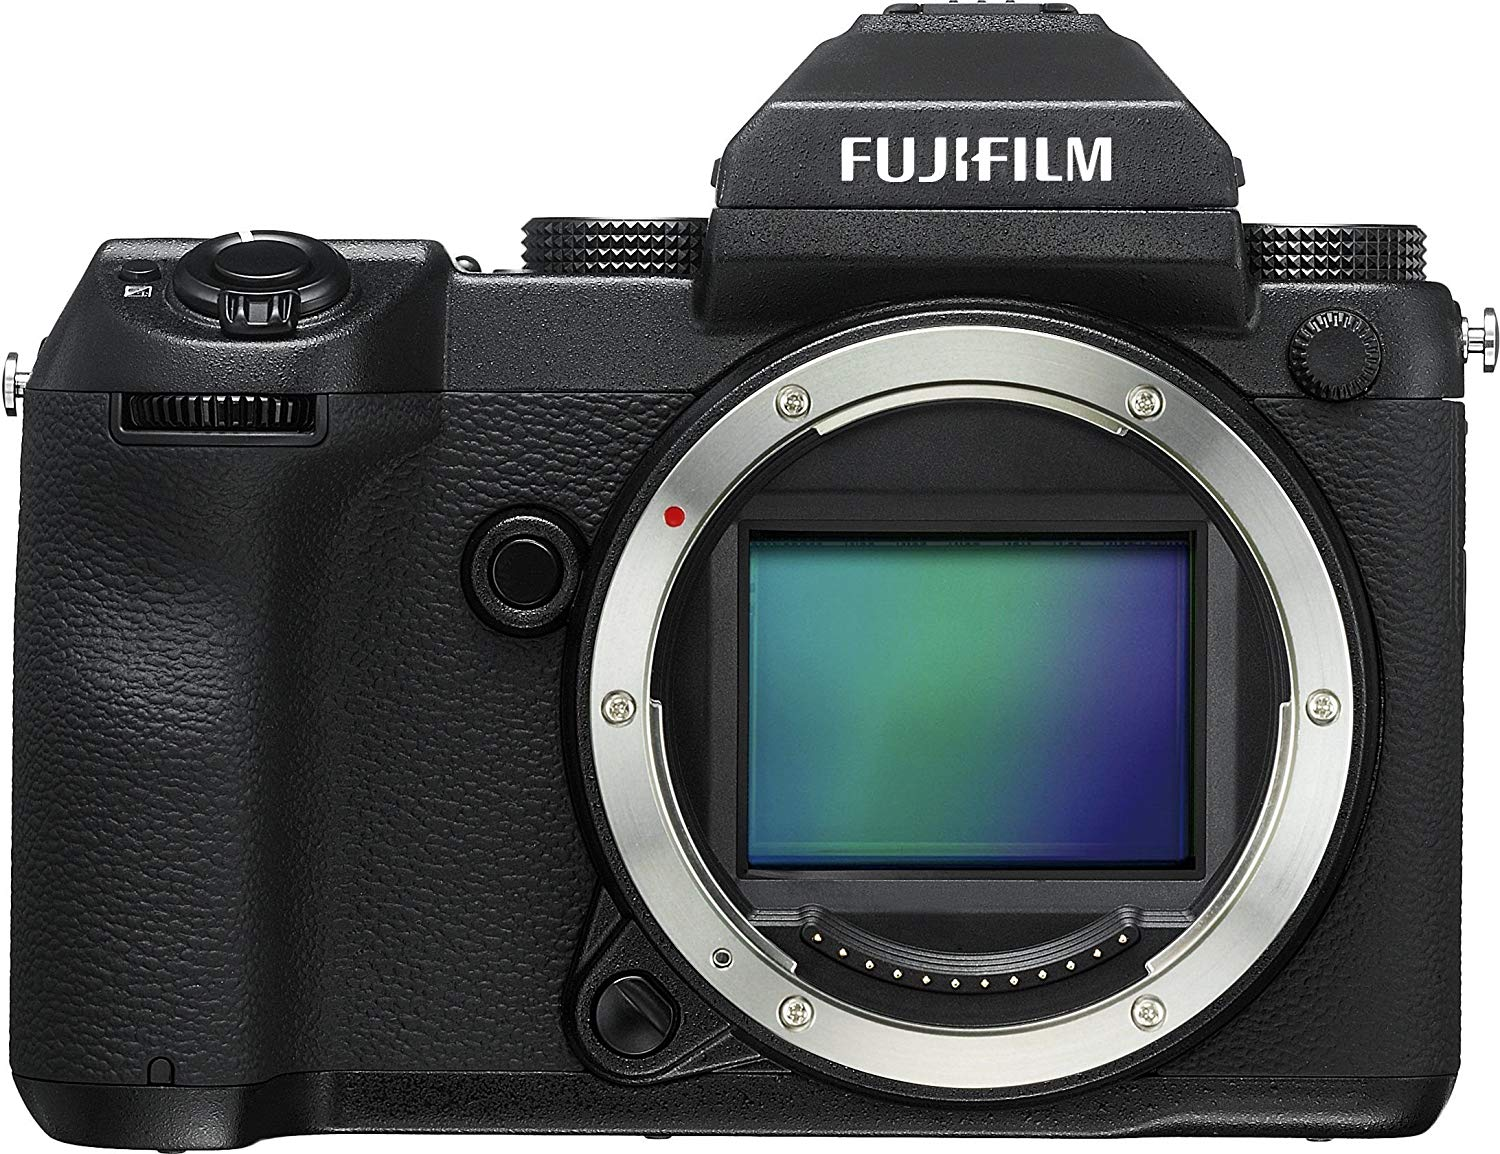 Fuji GFX 50S - Specs: Medium Format Sensor, 51.4MPWho's it for? The photographer who worships image quality, dynamic range, and ISO performance above everything else.